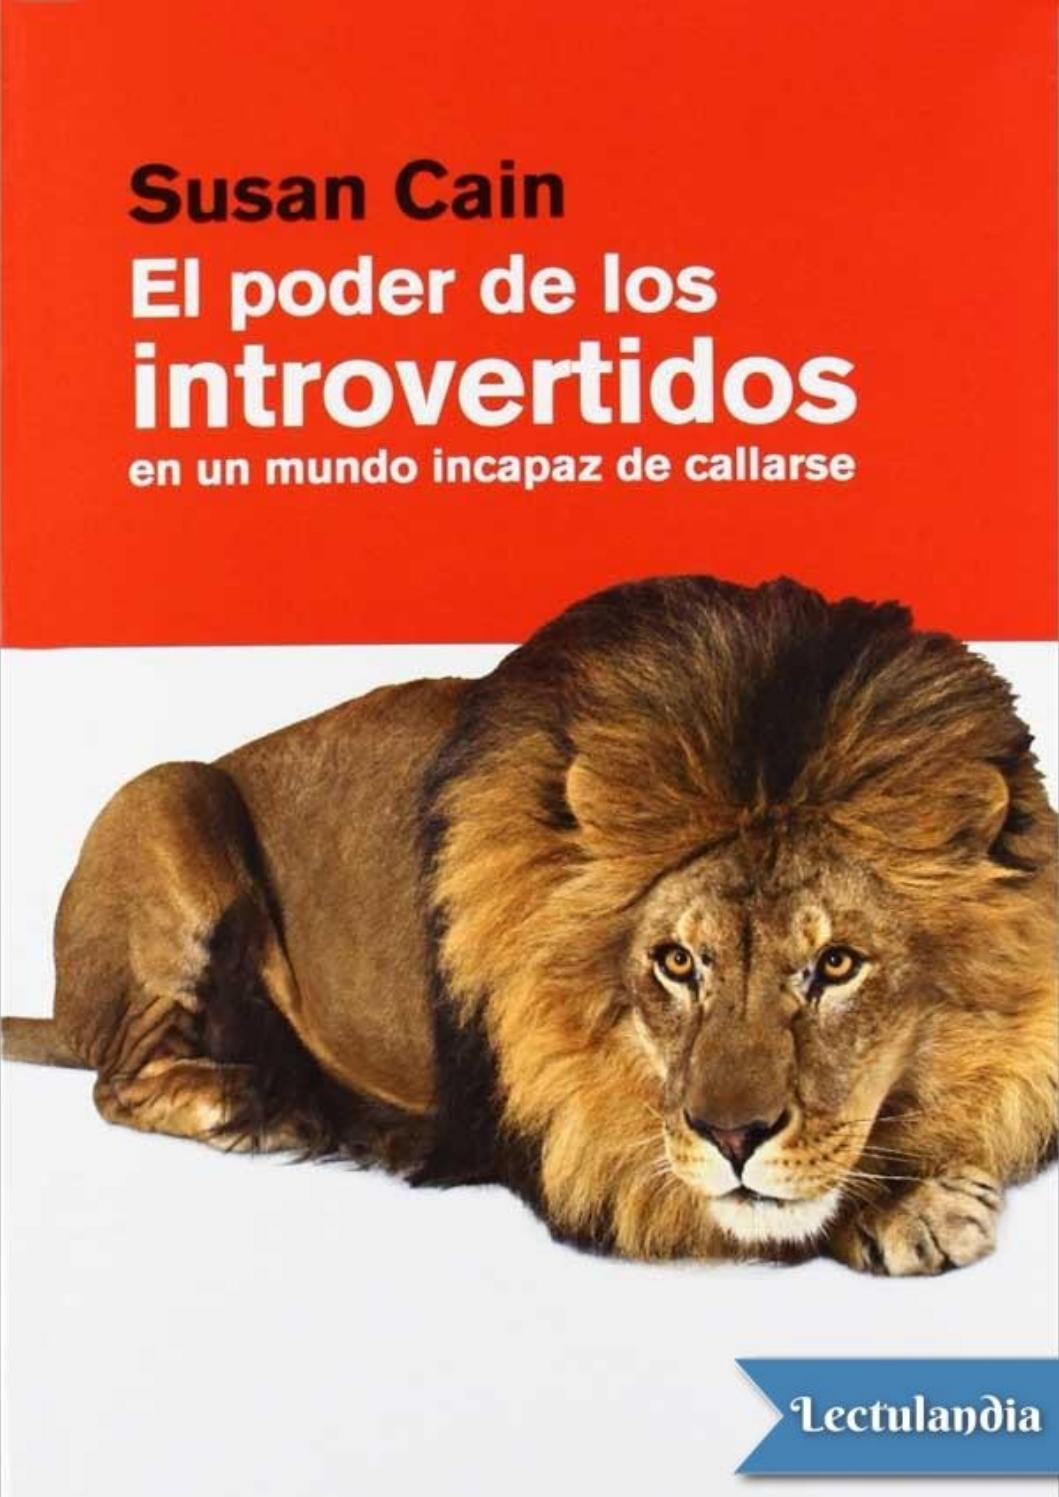 3d4e5a86e528e El poder de los introvertidos by munditeca2018 - issuu